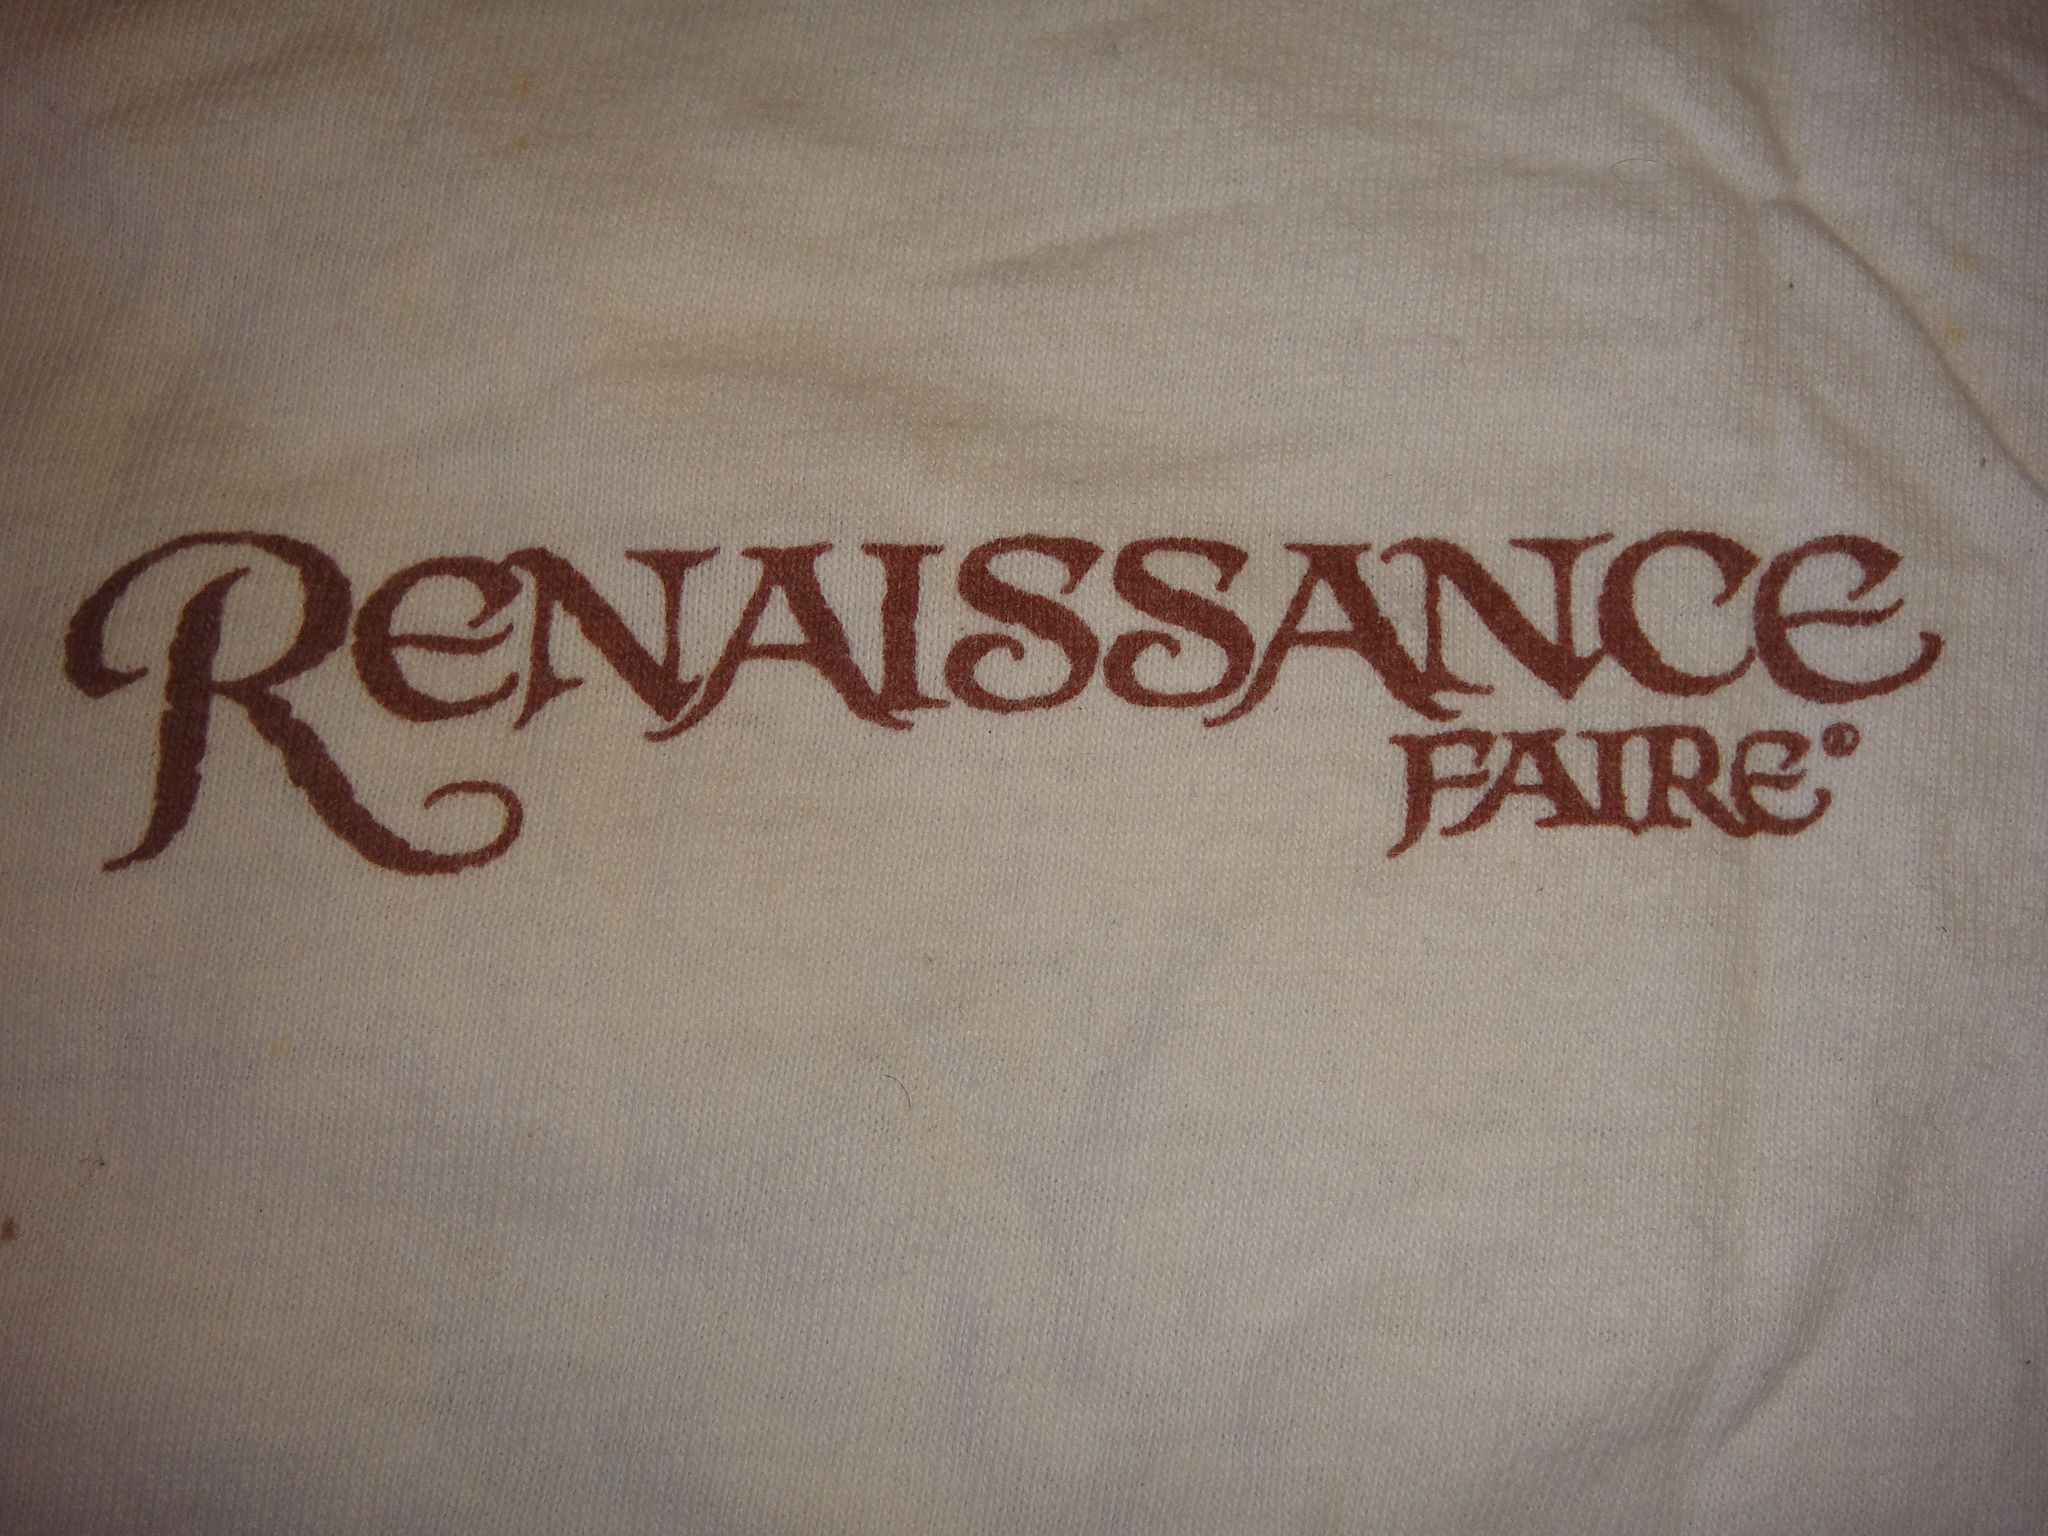 I went to the Ren Faire a couple of times. There's nothing like walking around eating a turkey leg and drinking mead.